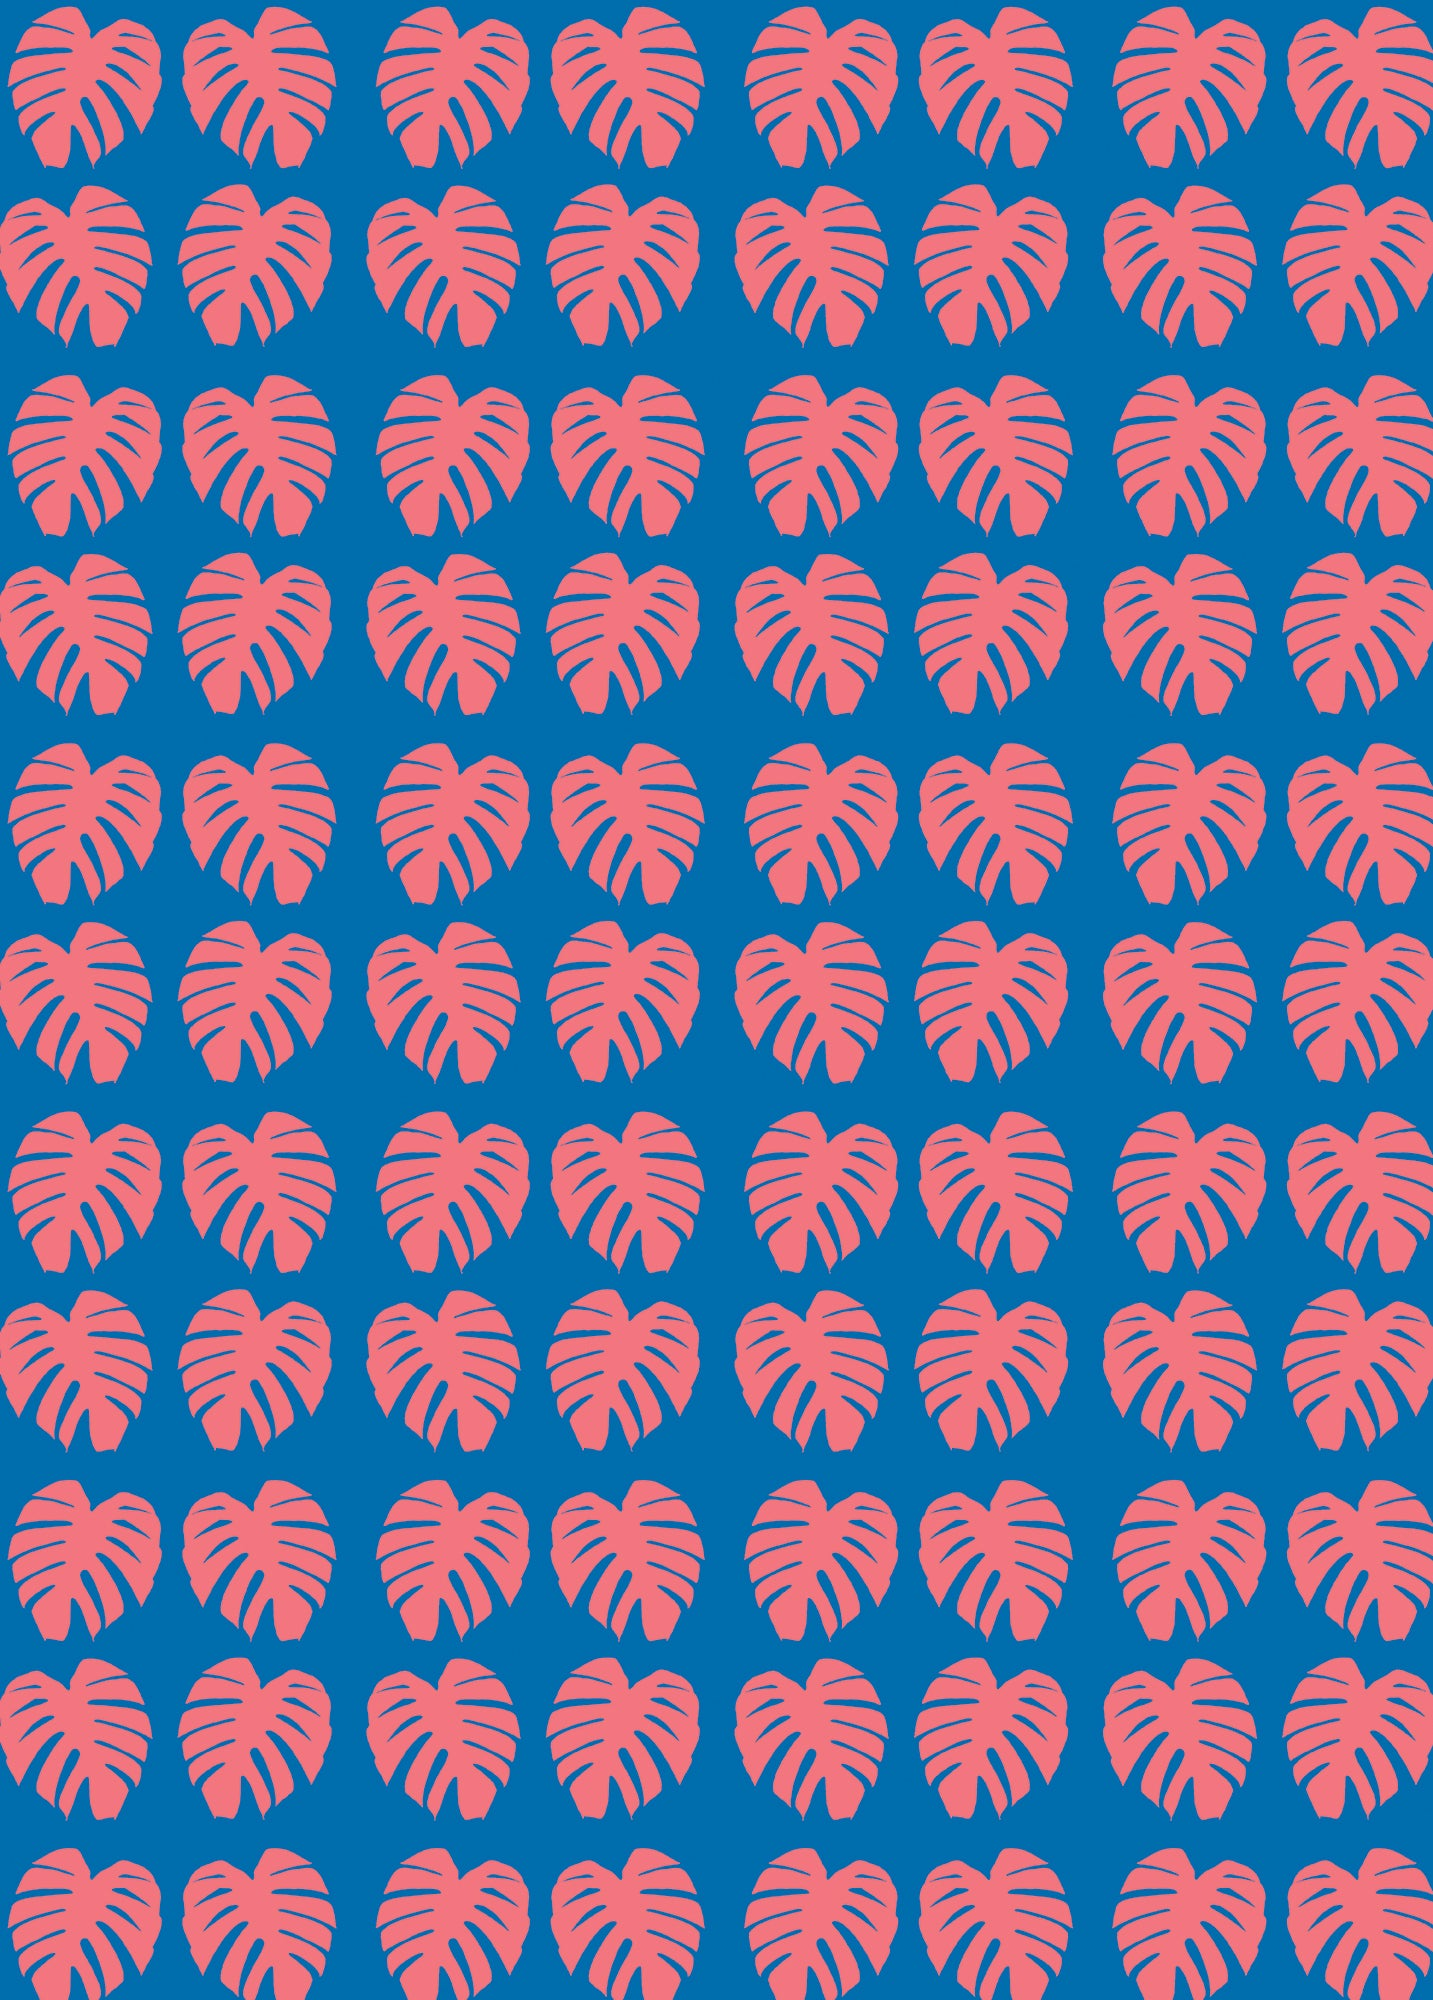 Monstera leaf wrapping paper - Inspired